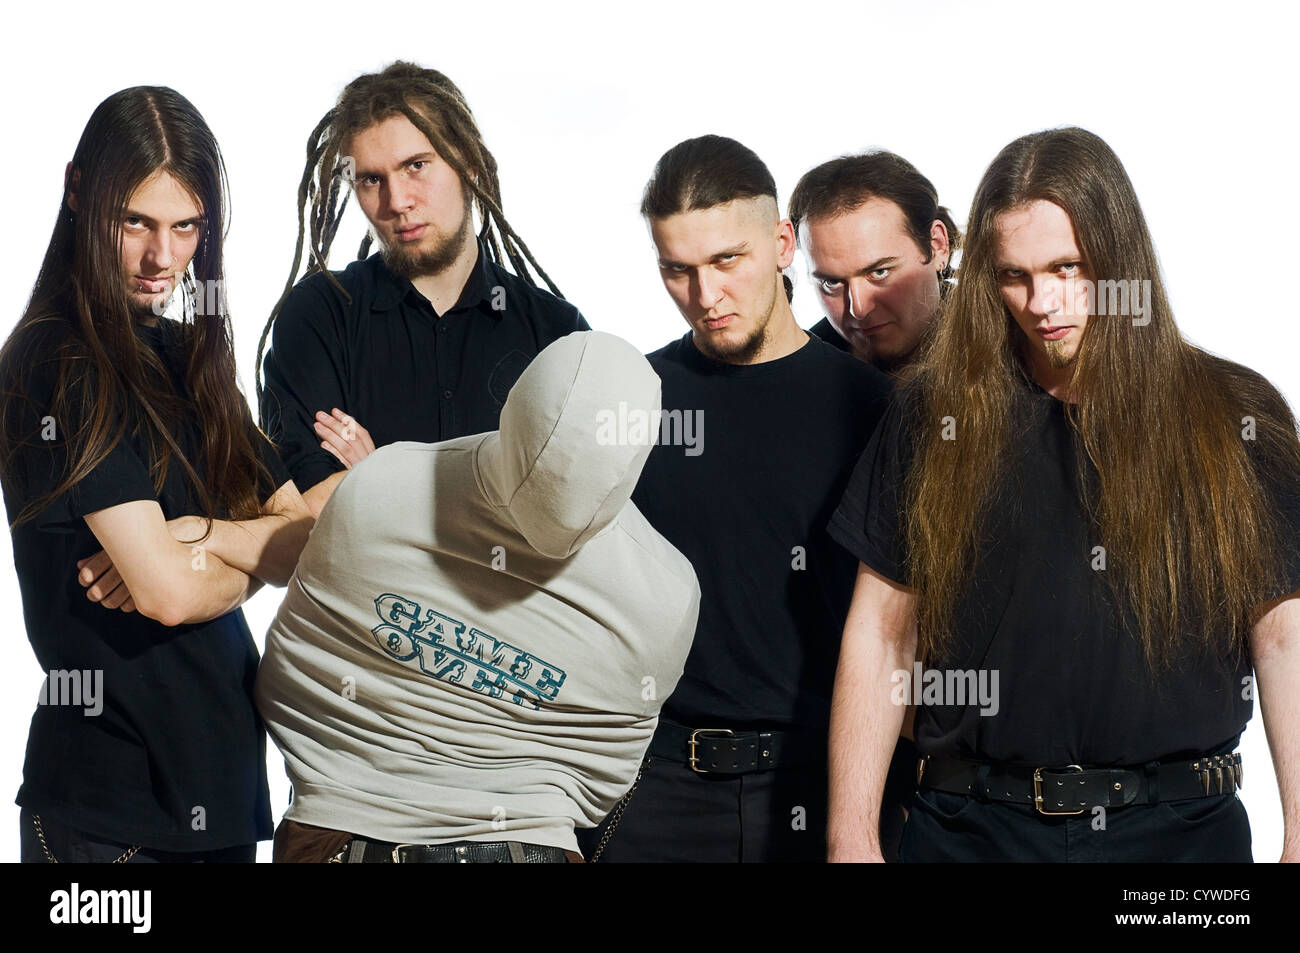 death metal band members group stock photo 51575876 alamy